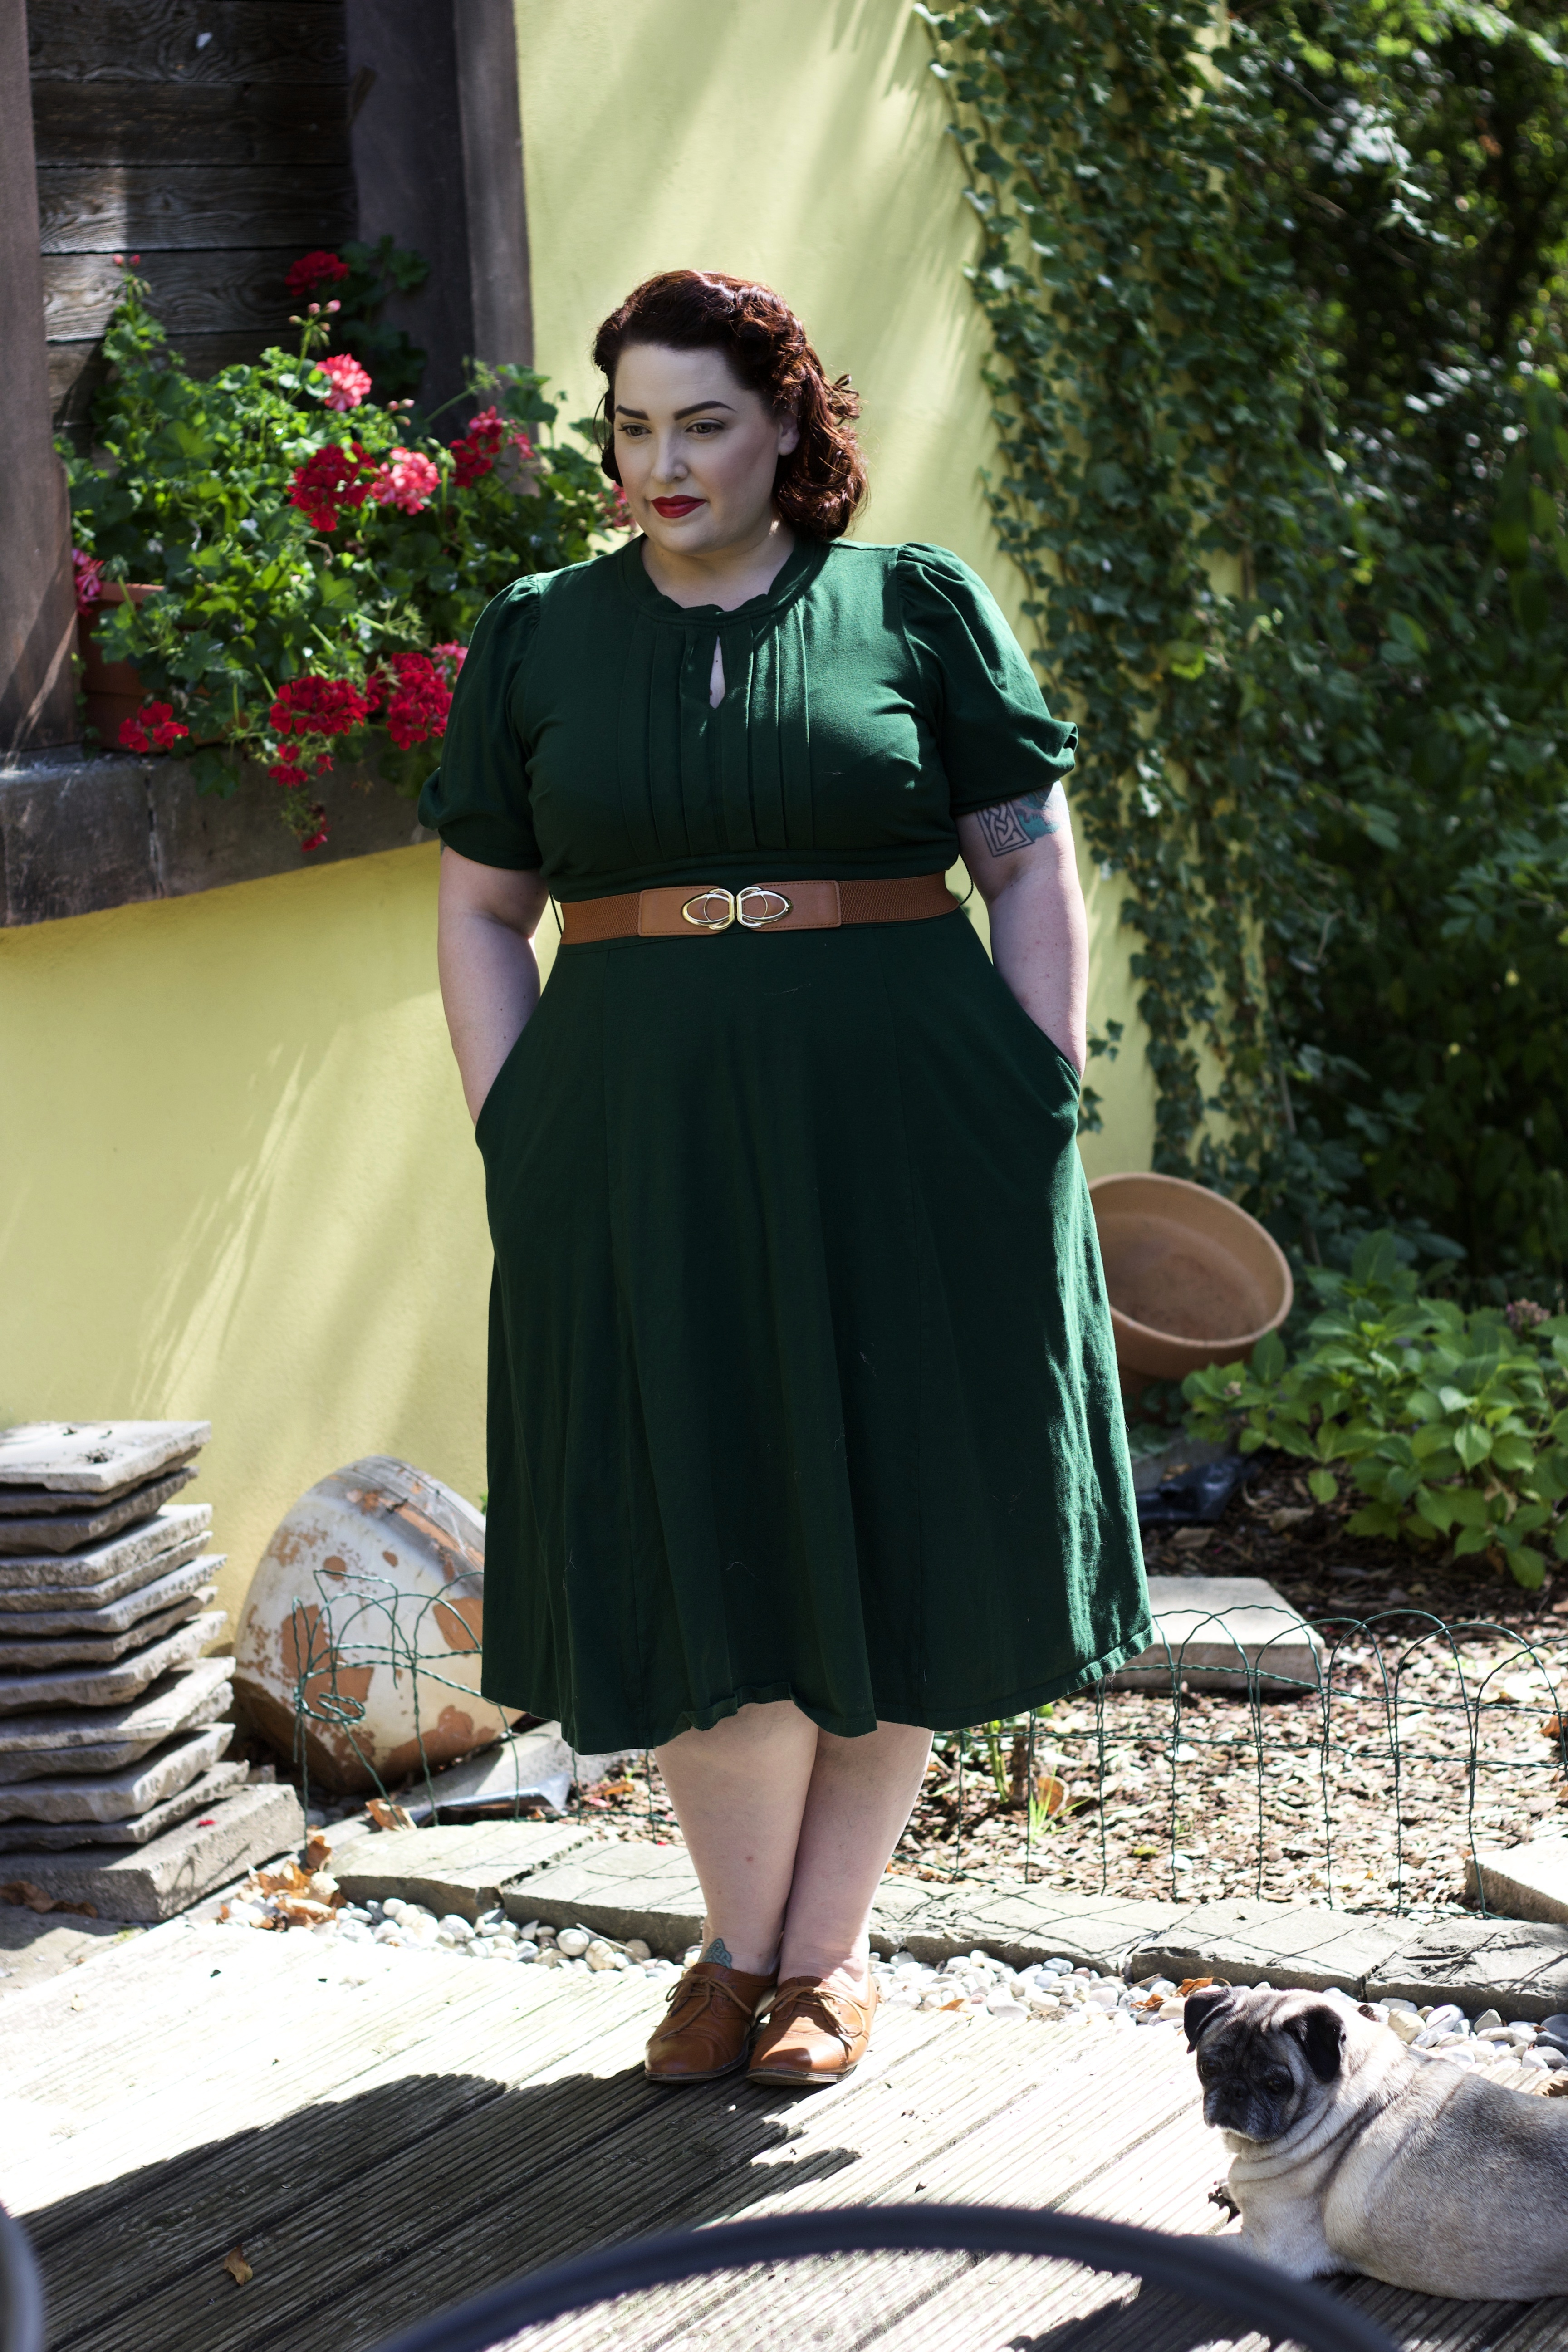 Vintage Style Woman in Green Dress